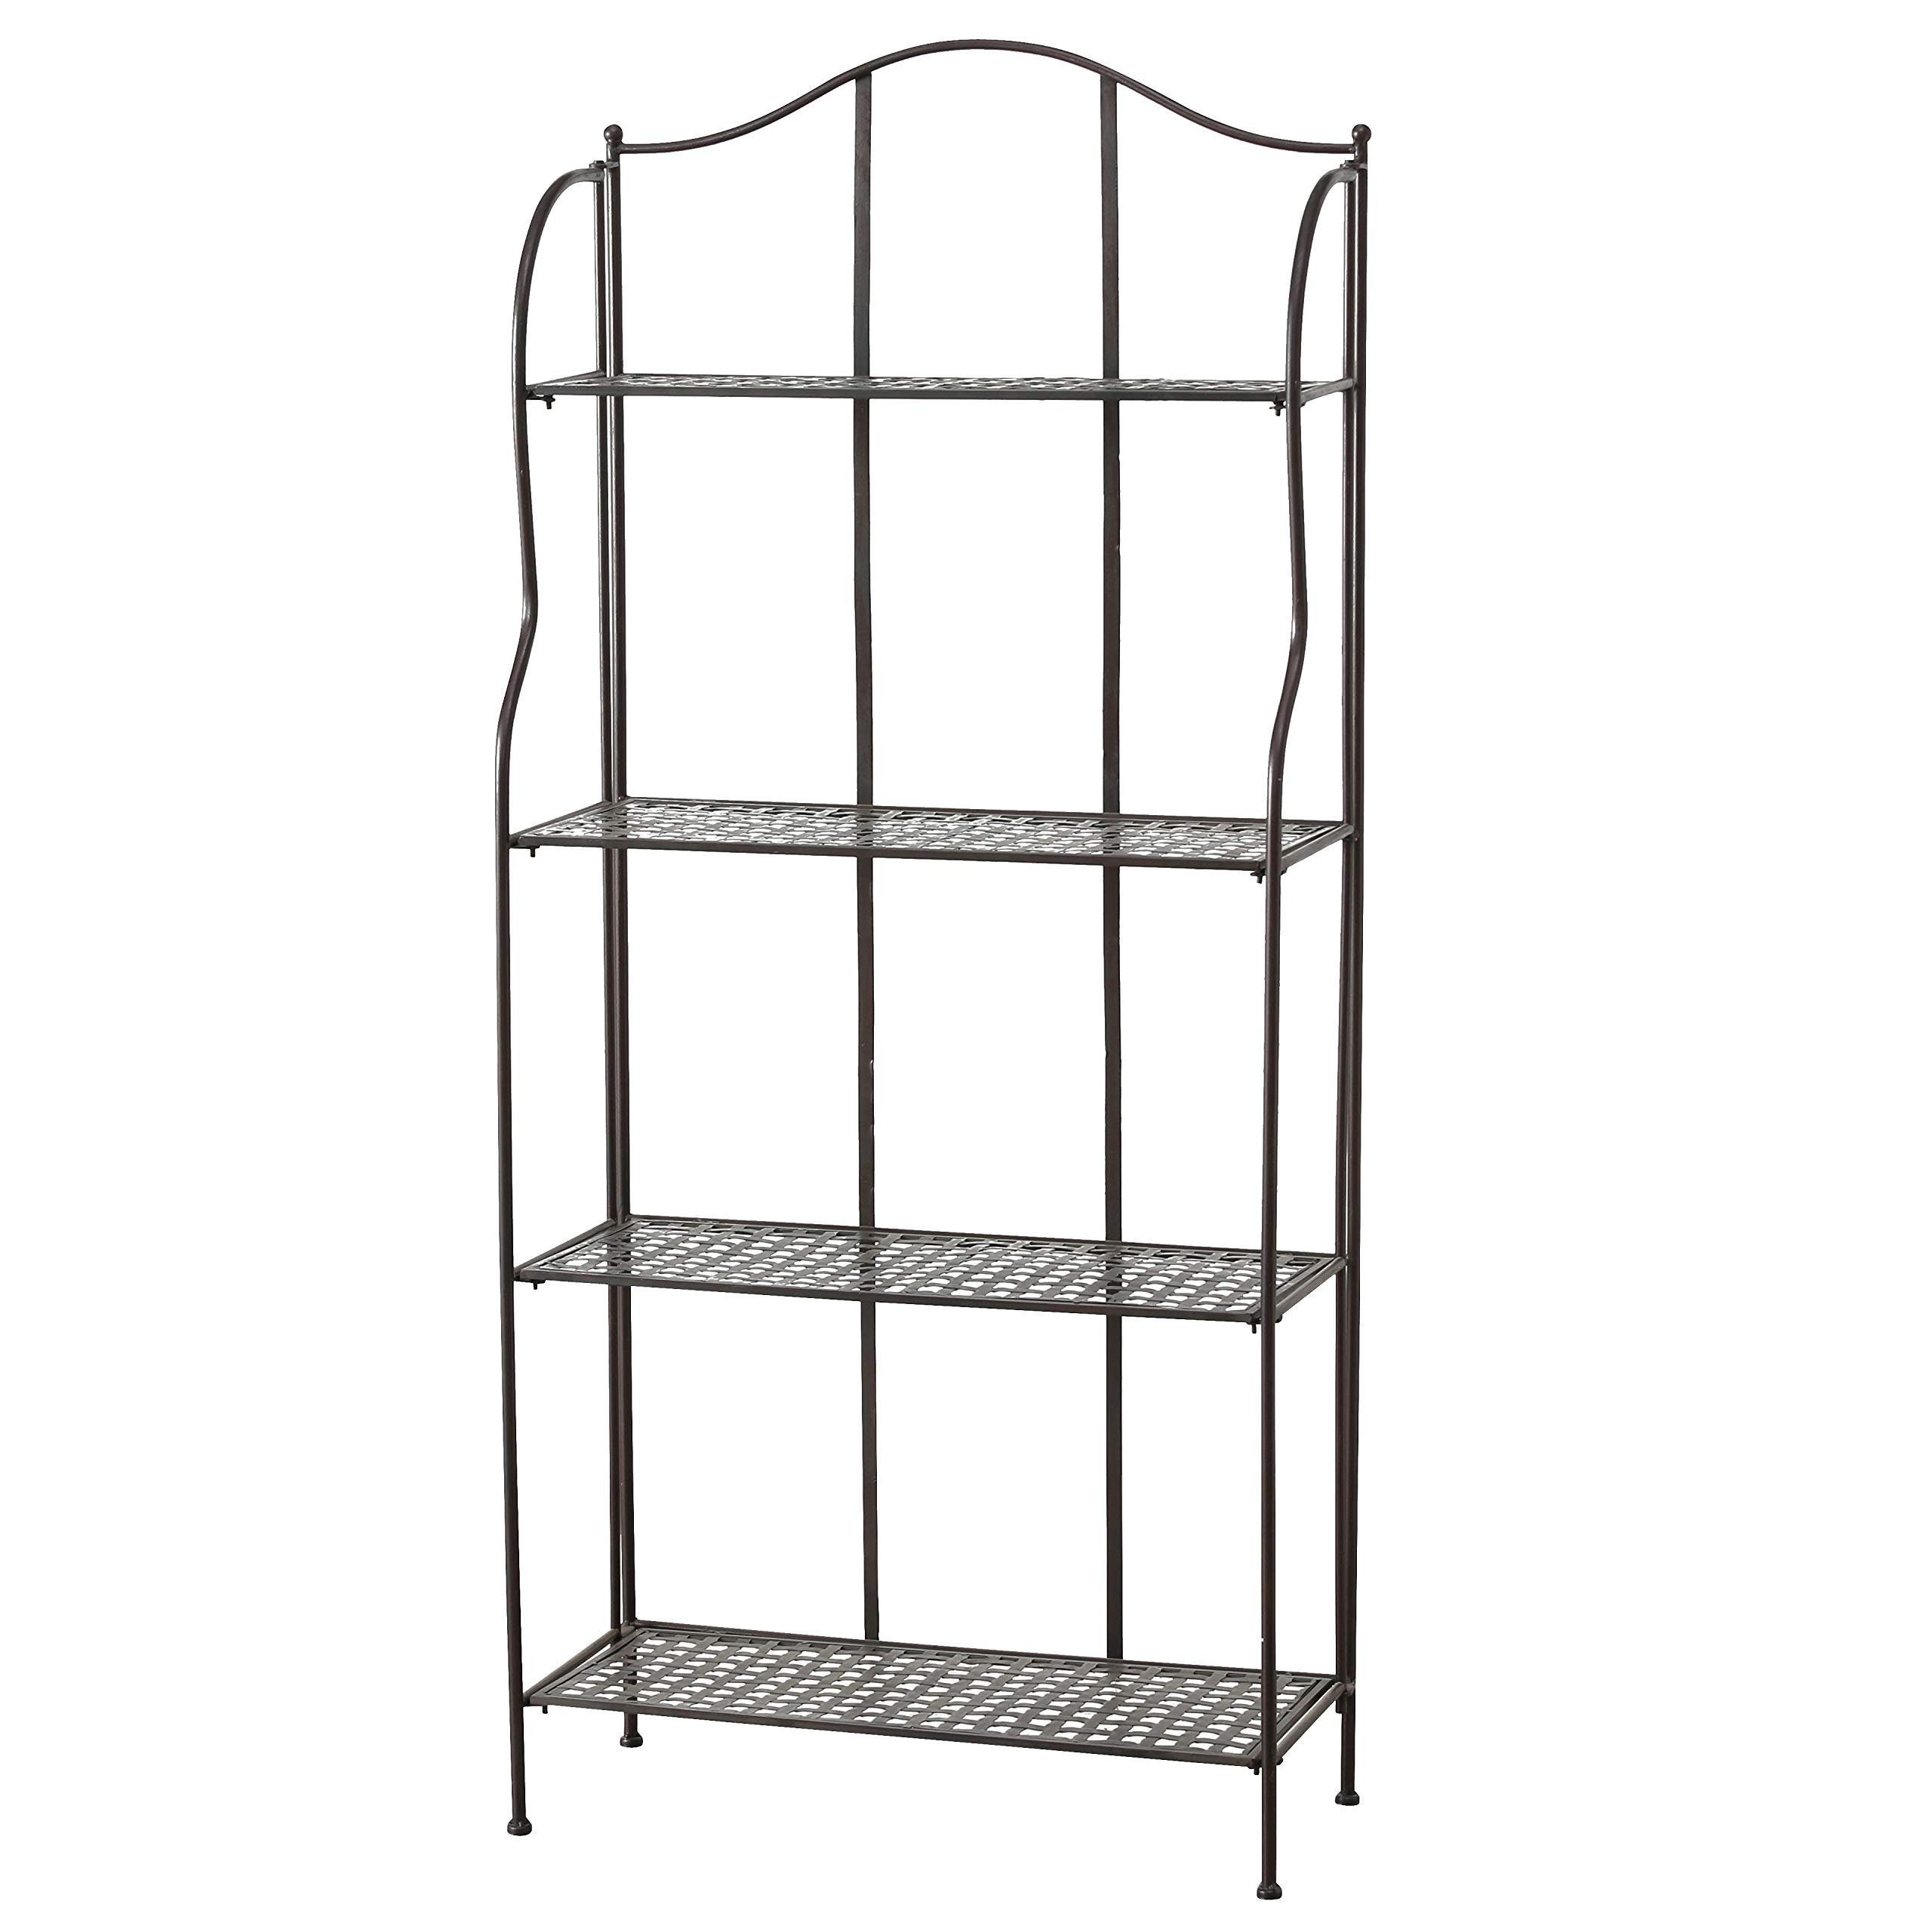 WHW Whole House Worlds Farmers Favorite Bakers Rack, Rustic Bronze Toned Iron, for Indoor and Outdoor Use, Over 5 Feet Tall by WHW Whole House Worlds